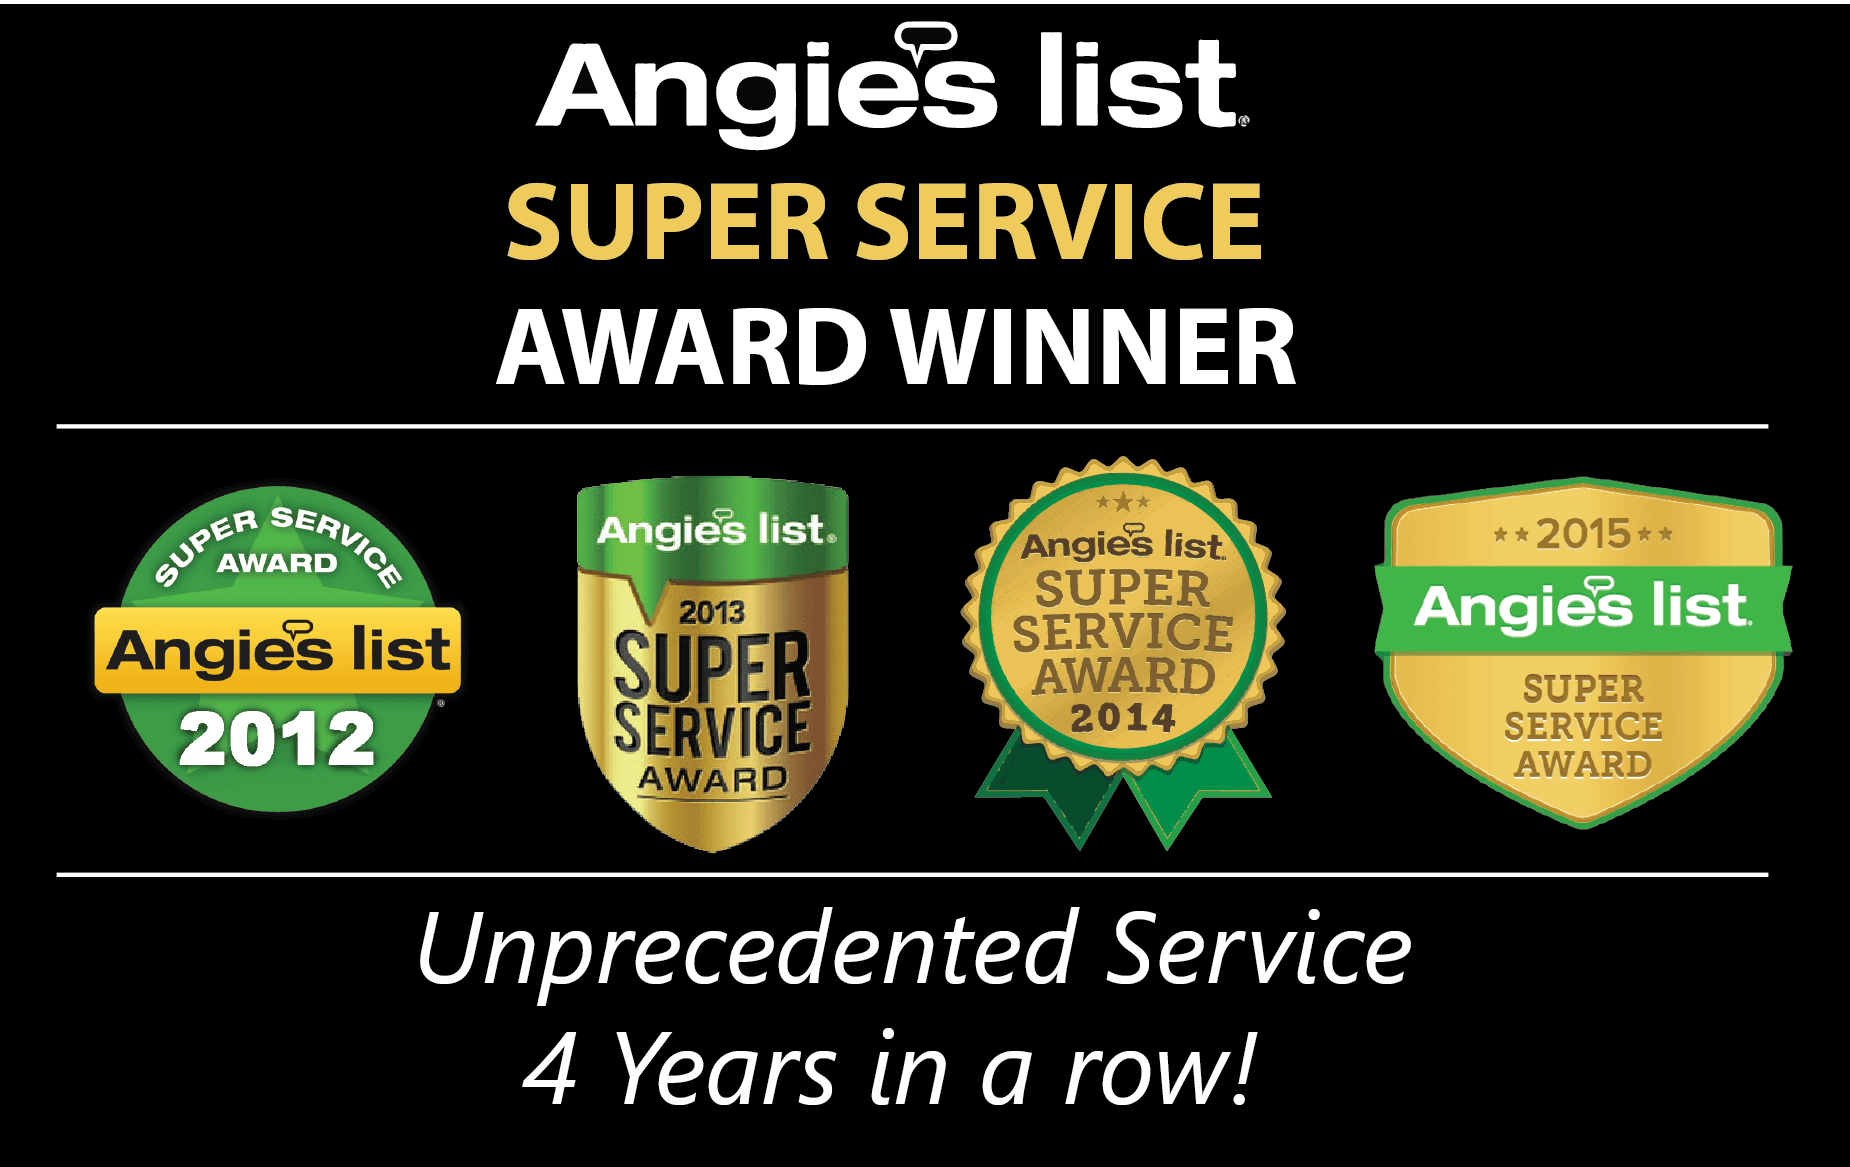 angie's list super service award winnner four years in a row